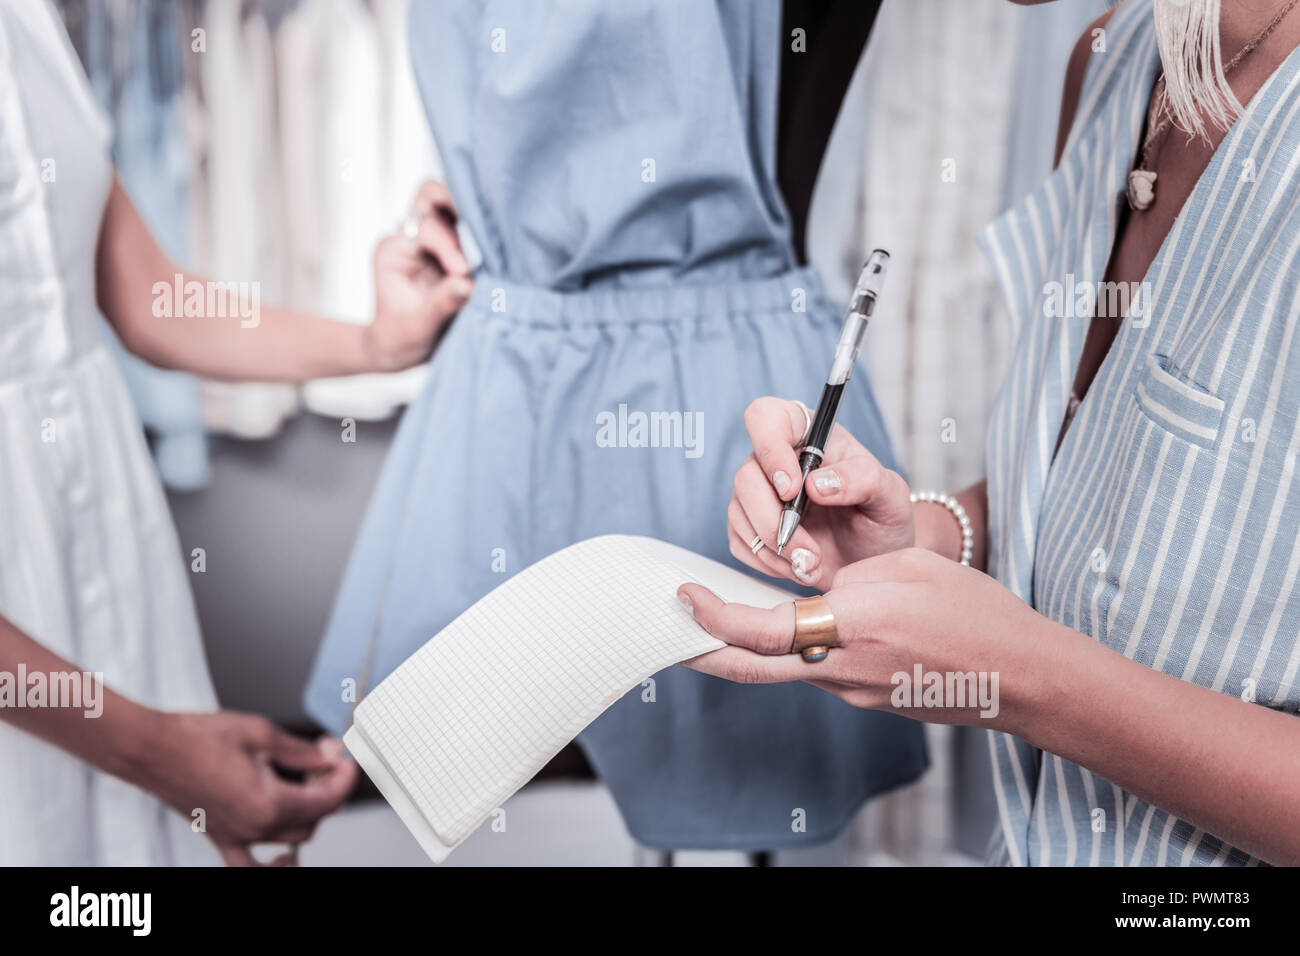 Fashion designer wearing striped vest and nice accessories making some notes - Stock Image